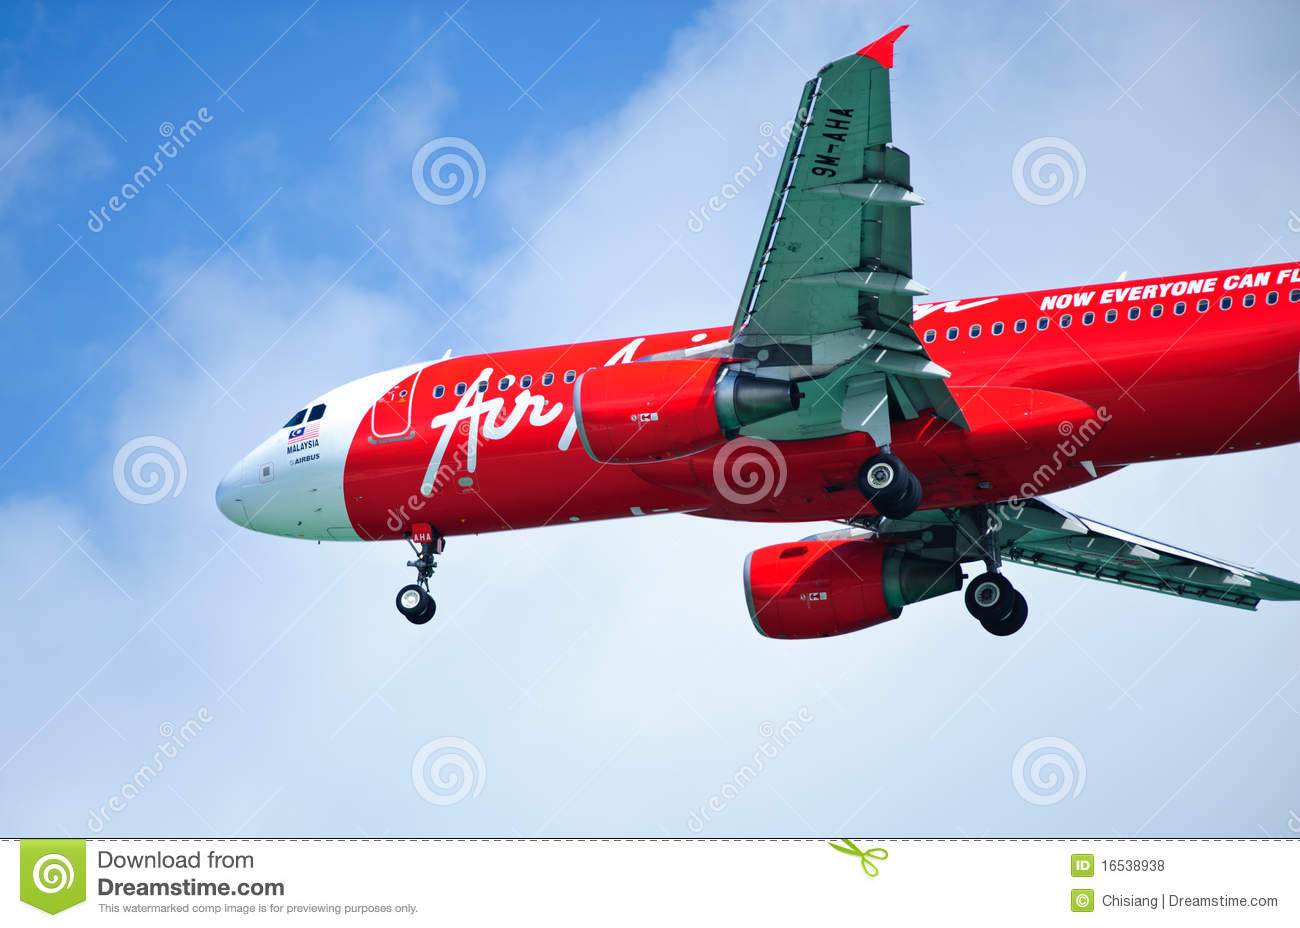 air asia business plan Employees • 68 employees per flight fuel • air asia has hedged its jet fuelcapacity requirements for three years 6 business planning mission: sustaining cost advantages while maintaining low-cost, high-quality airline status in the time of unstable oil price and heavy market competition.